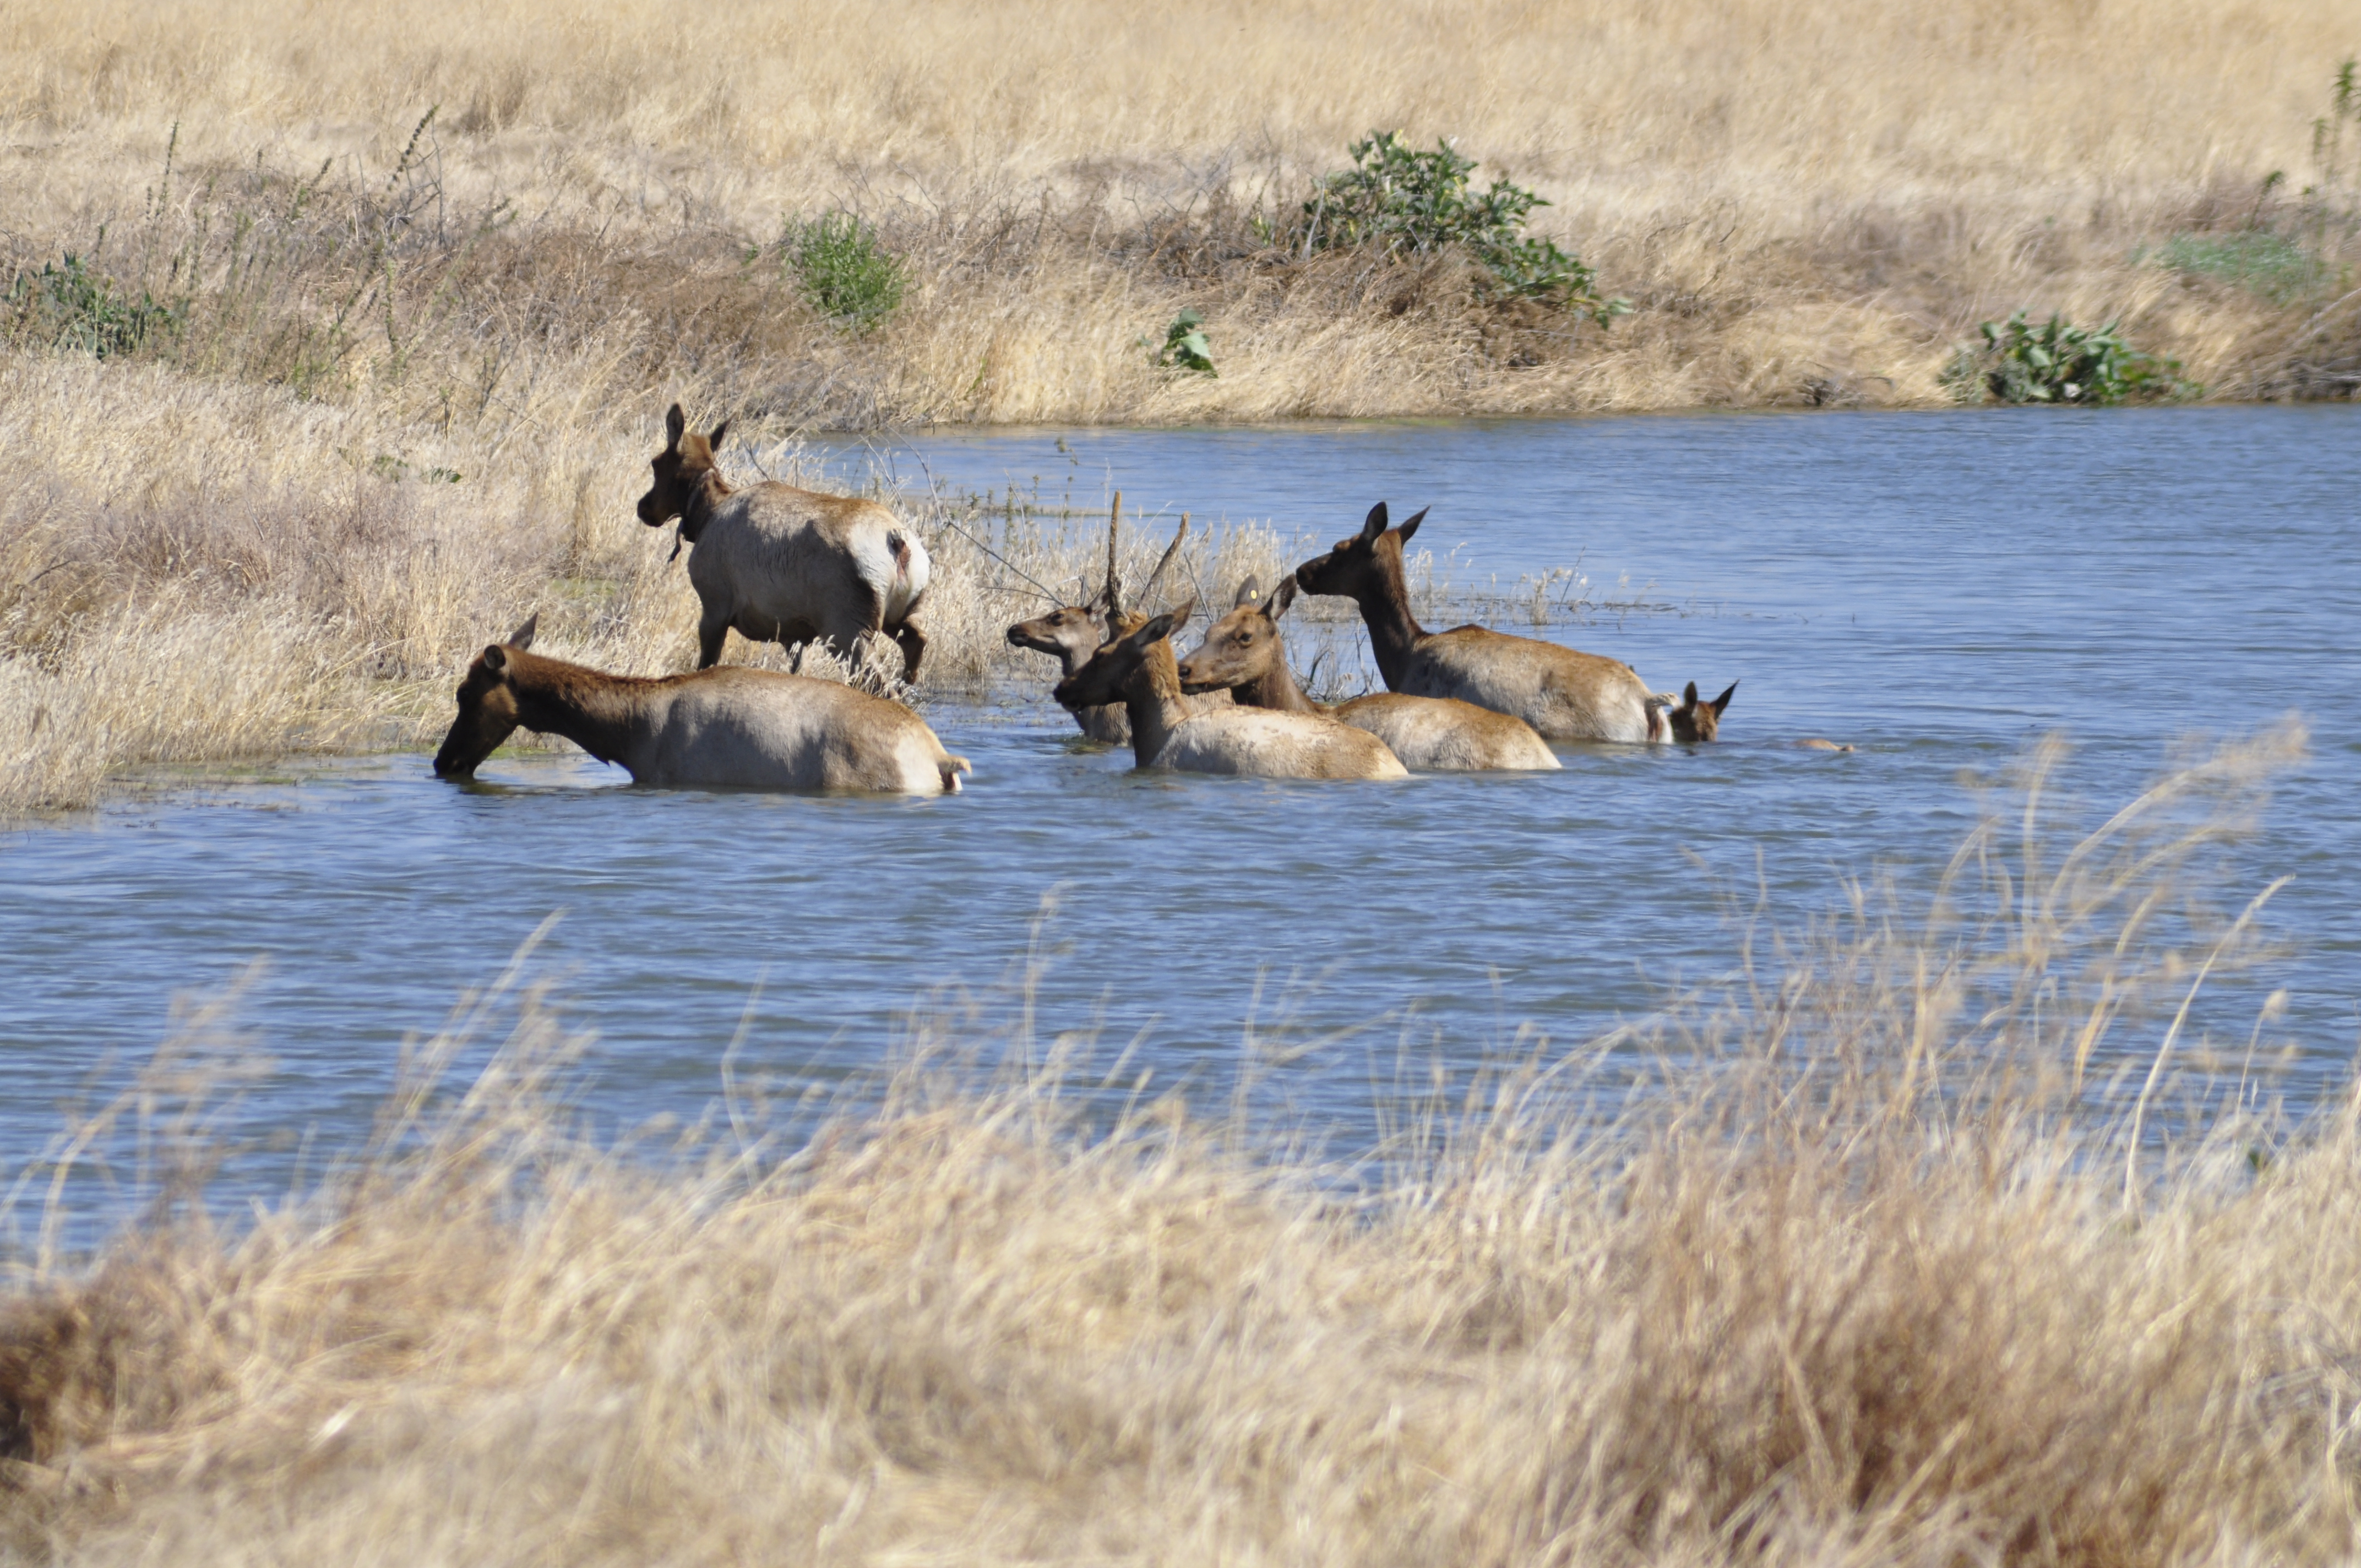 Tule Elk swiming